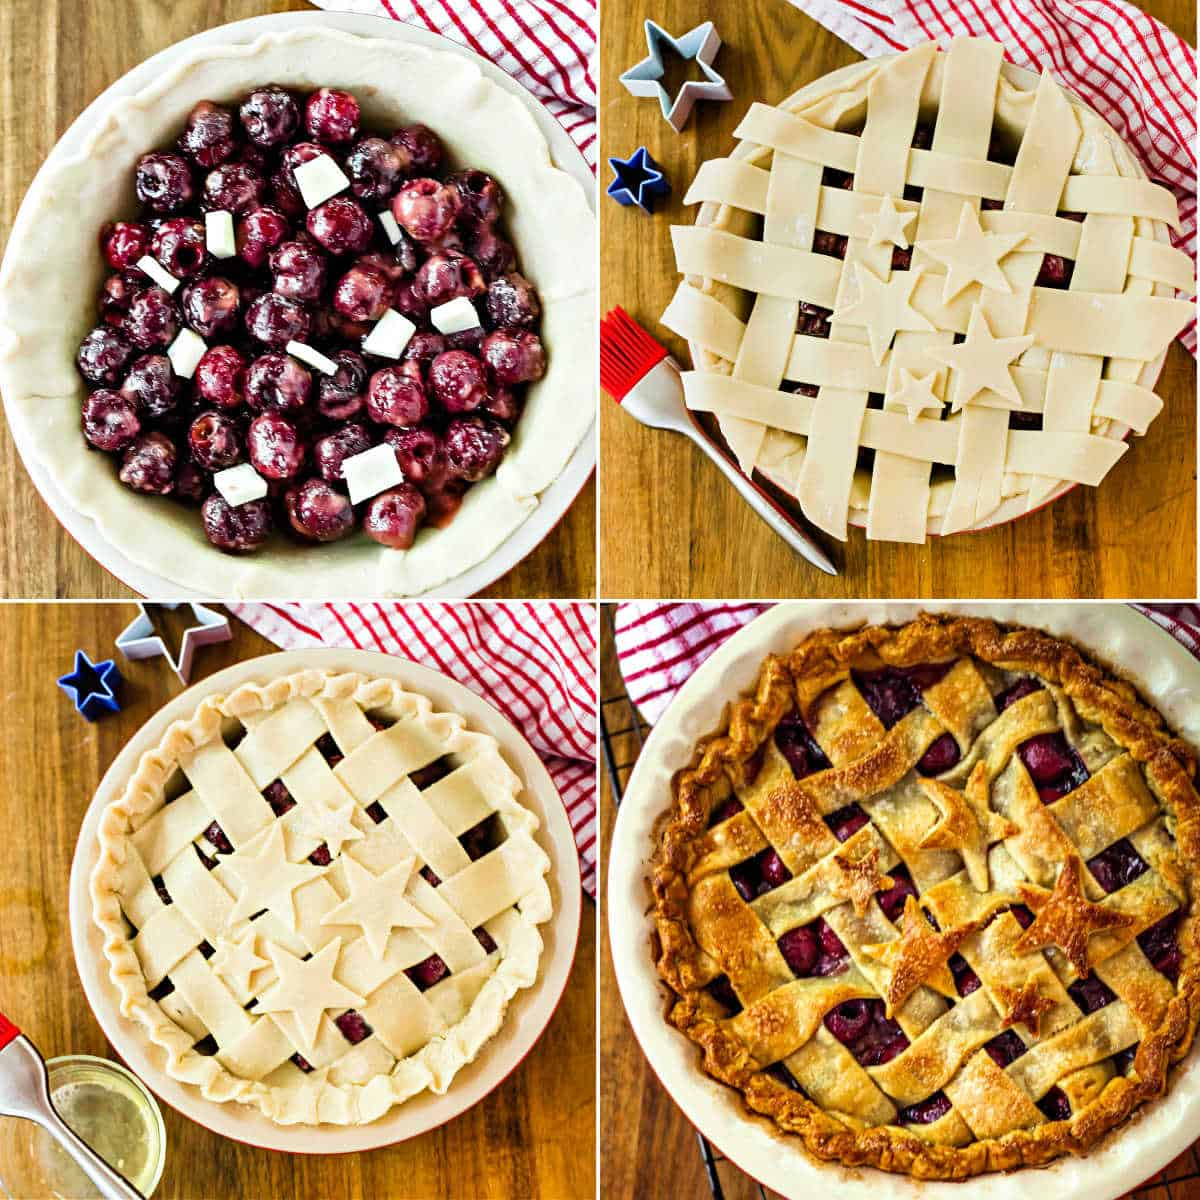 5-Star Cherry Pie preparation sequence